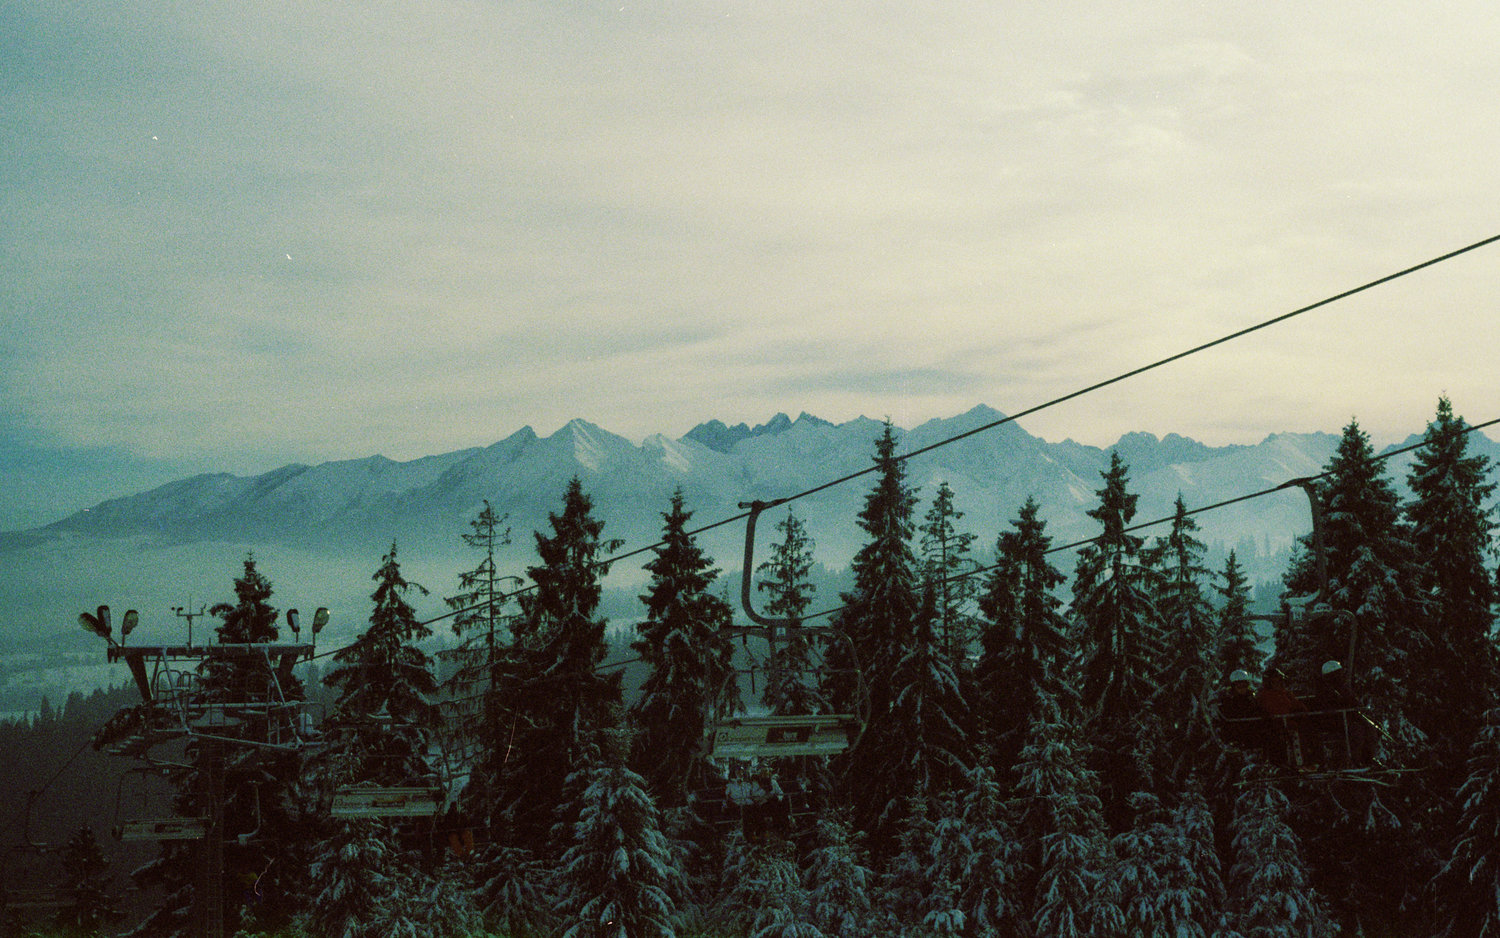 mountains-cable-cars-snow-capped-trees.jpg